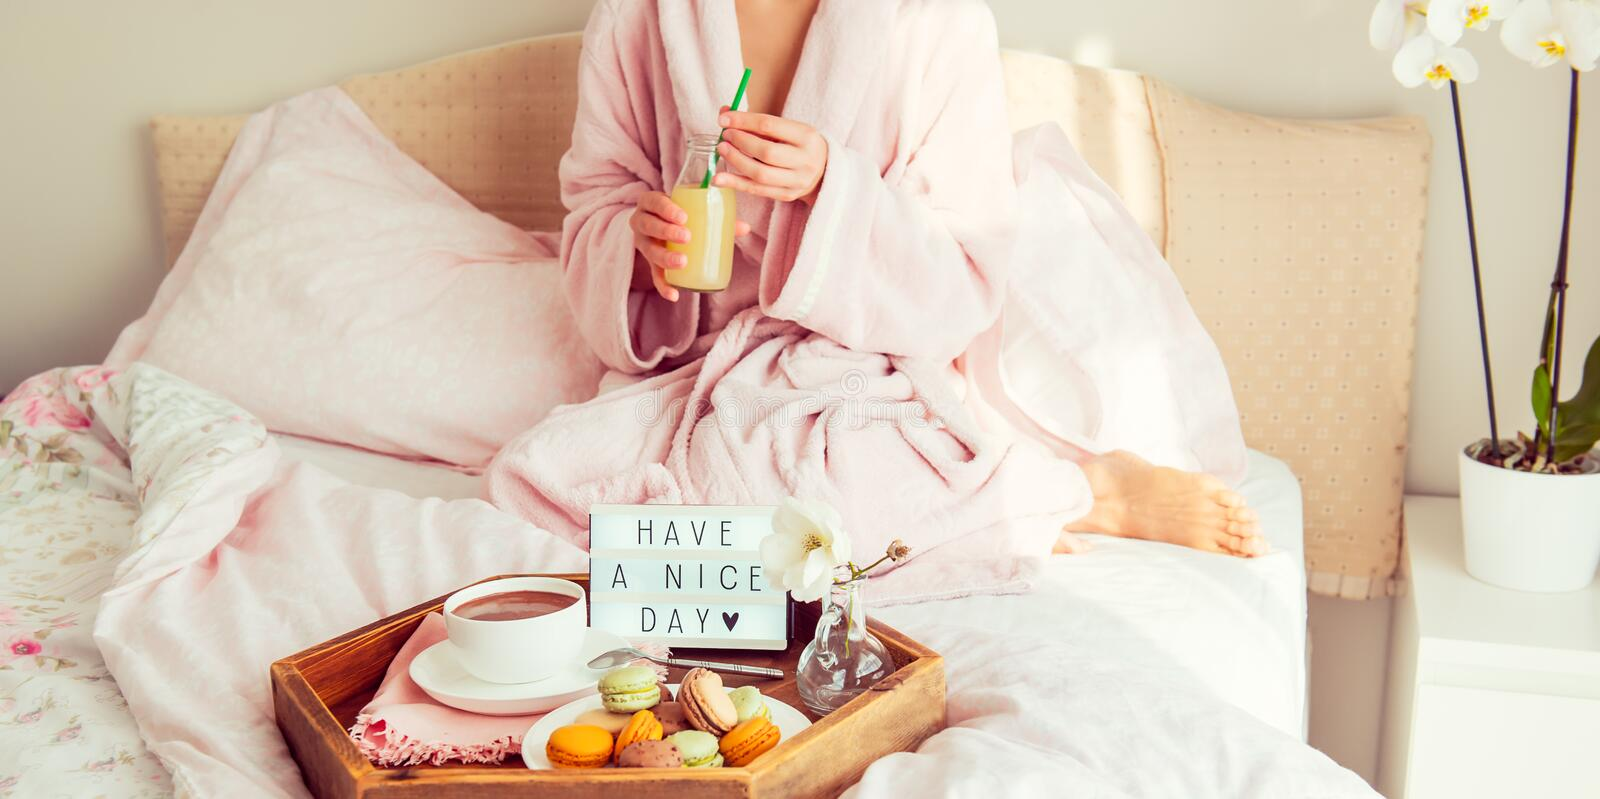 Good morning concept. Breakfast in bed with Have a nice day text on lighted box, coffee and macaroons on tray and blurred woman in stock photo